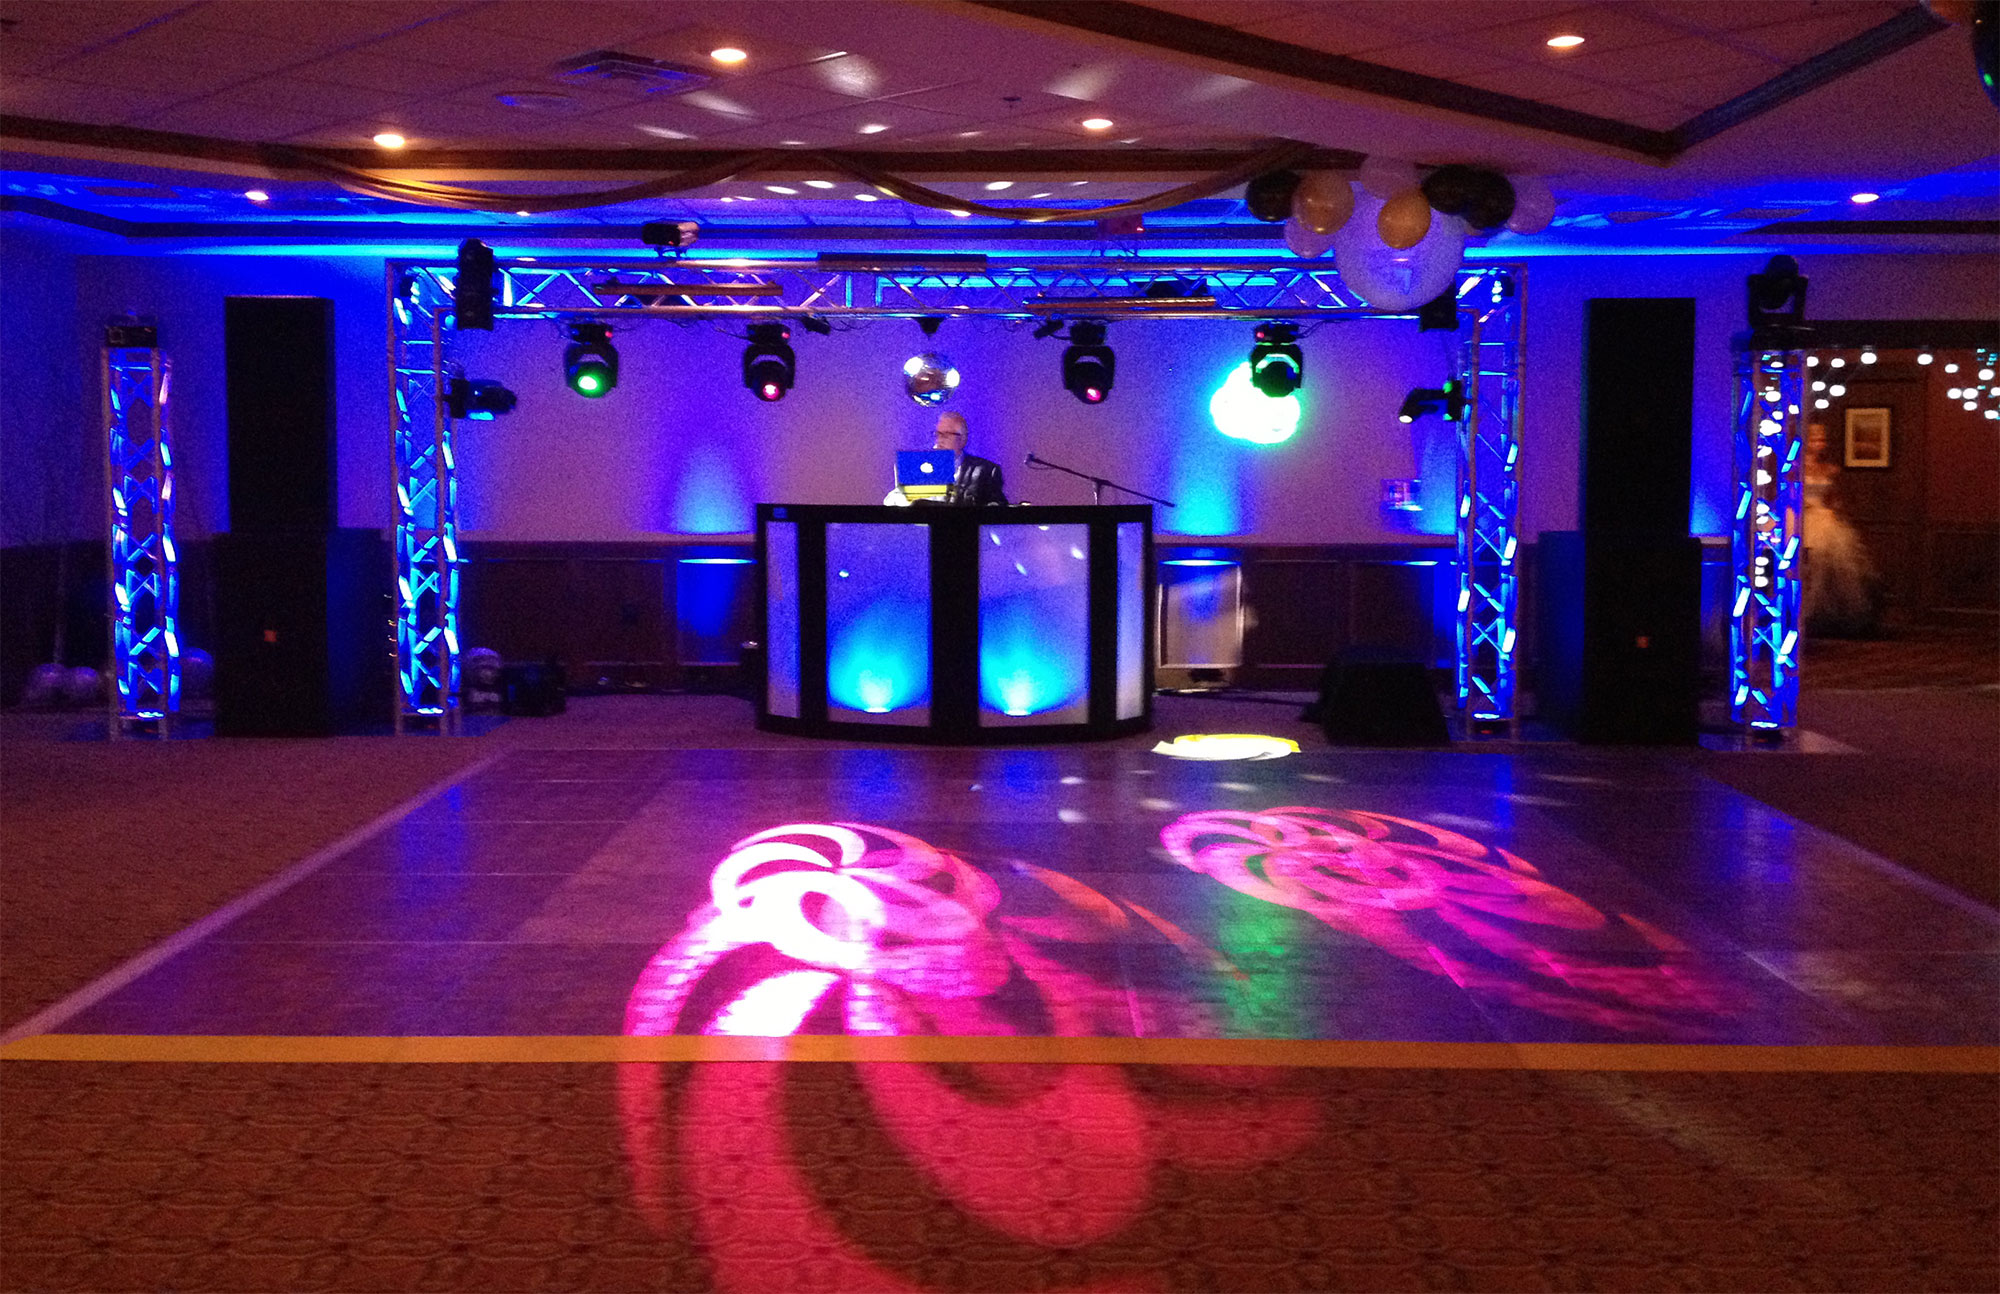 Total Light Show - Party Hits Music and Light Show - Wisconsin DJ Dance Weddings Events